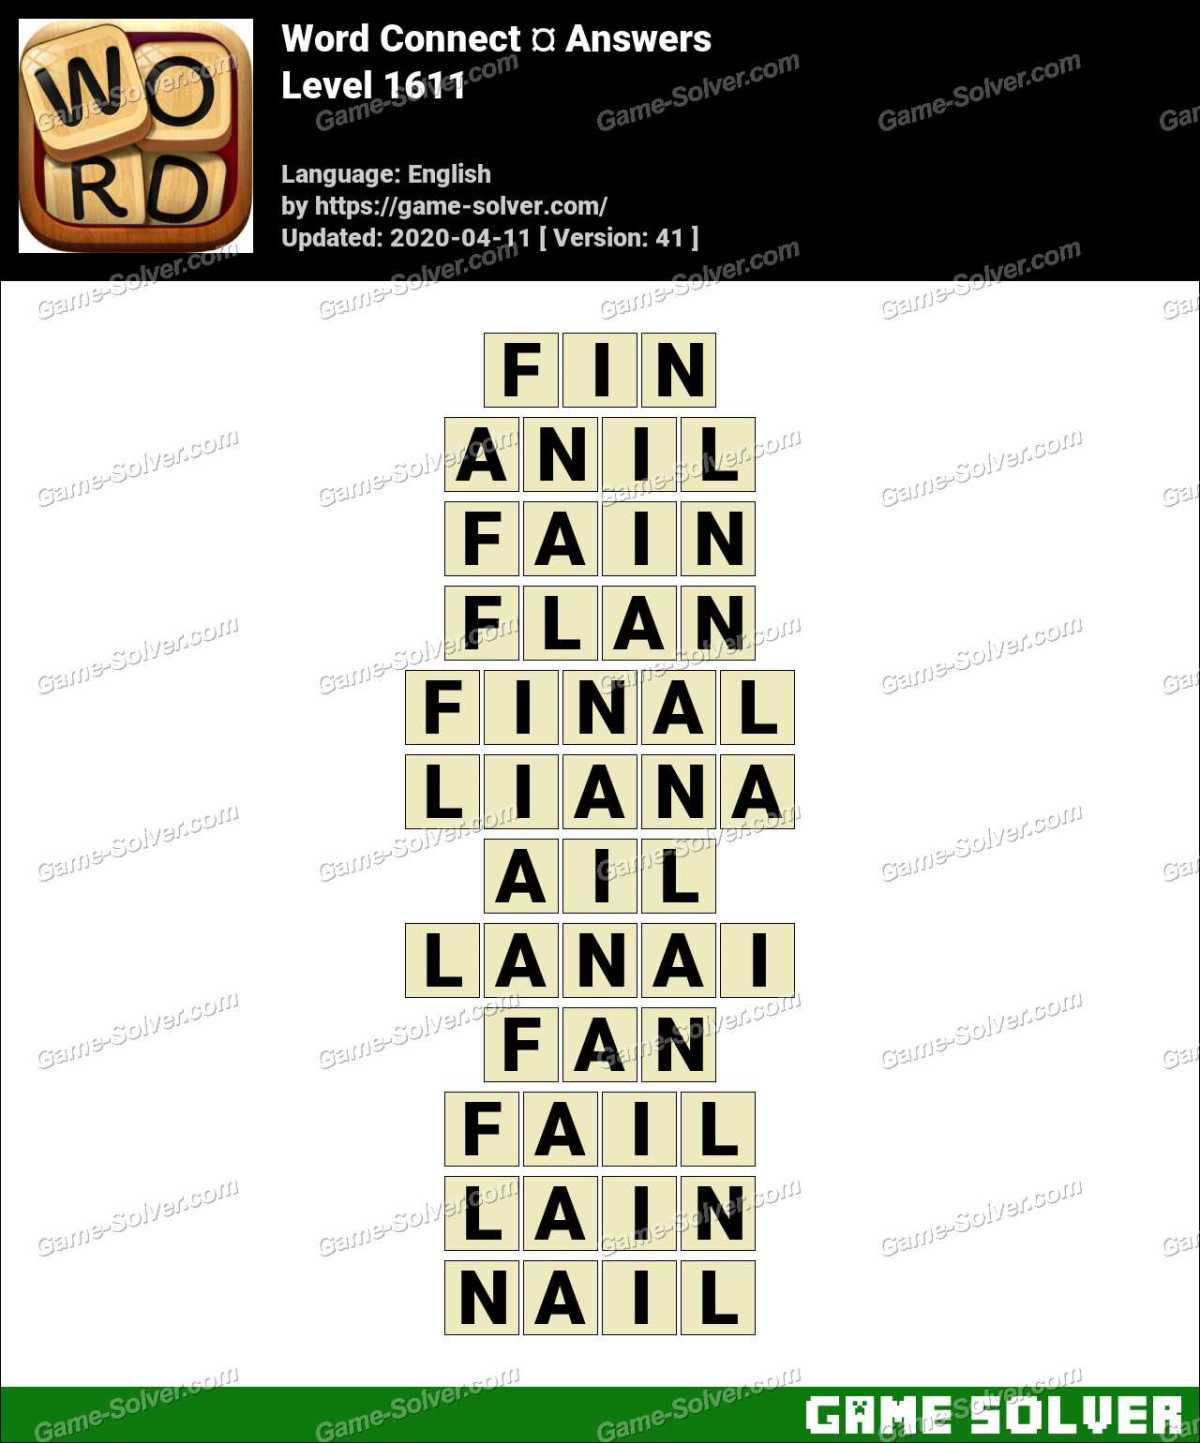 Word Connect Level 1611 Answers